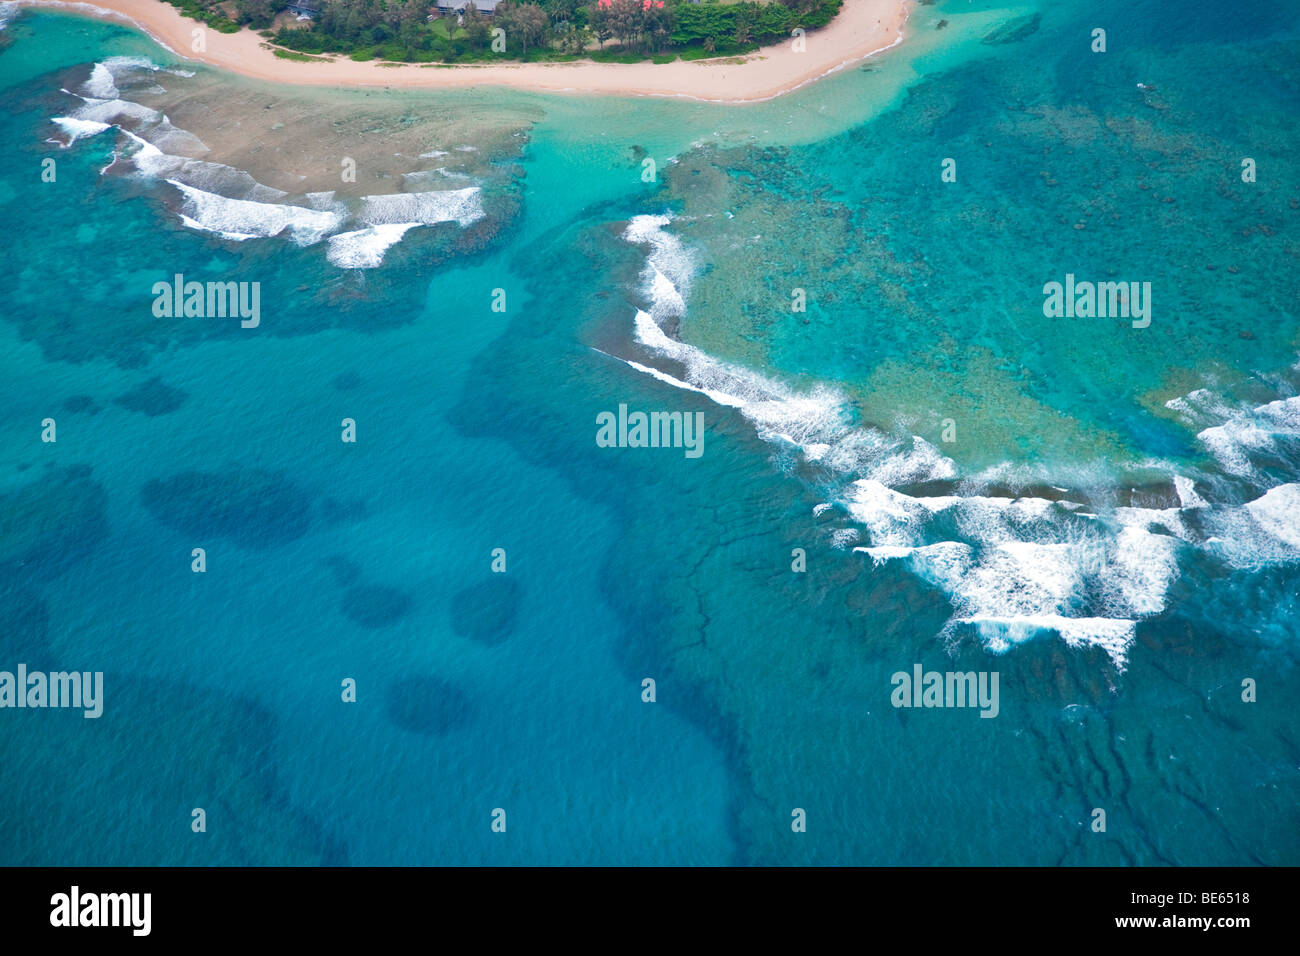 Tunnels Beach from the air. Kauai, Hawaii. - Stock Image